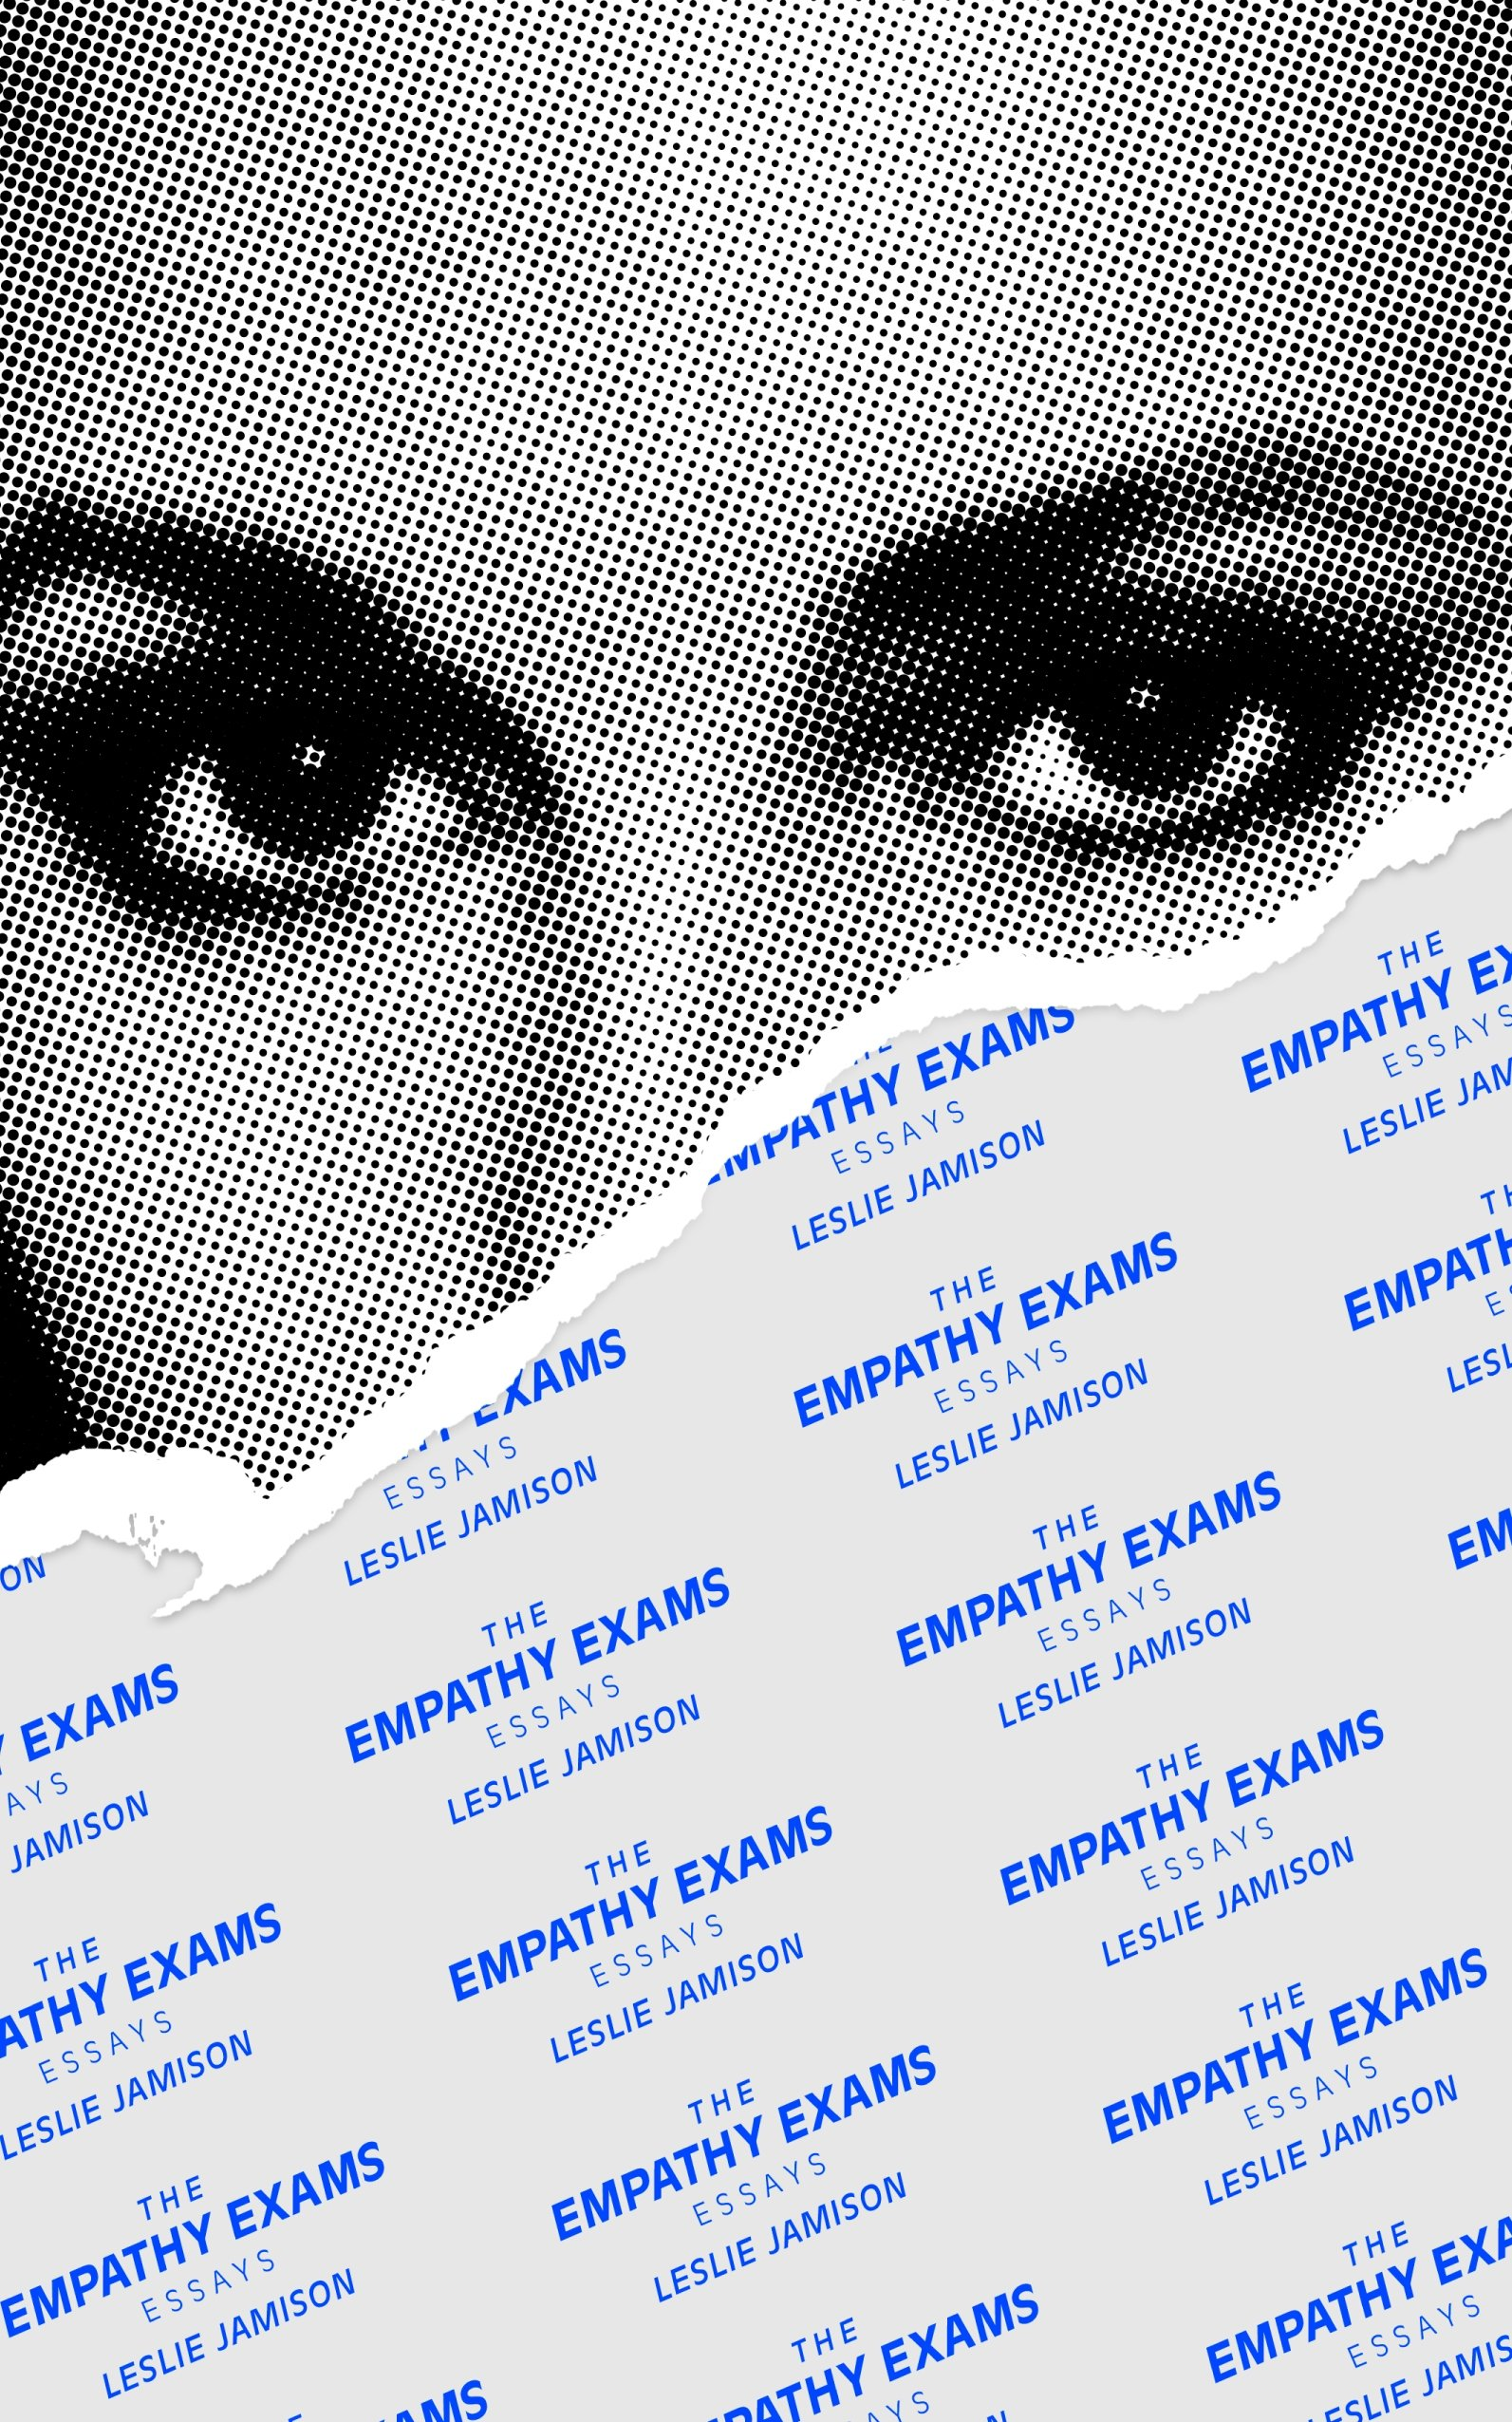 essays on exams the empathy exams essays co uk leslie jamison a  the empathy exams essays co uk leslie jamison the empathy exams essays co uk leslie jamison